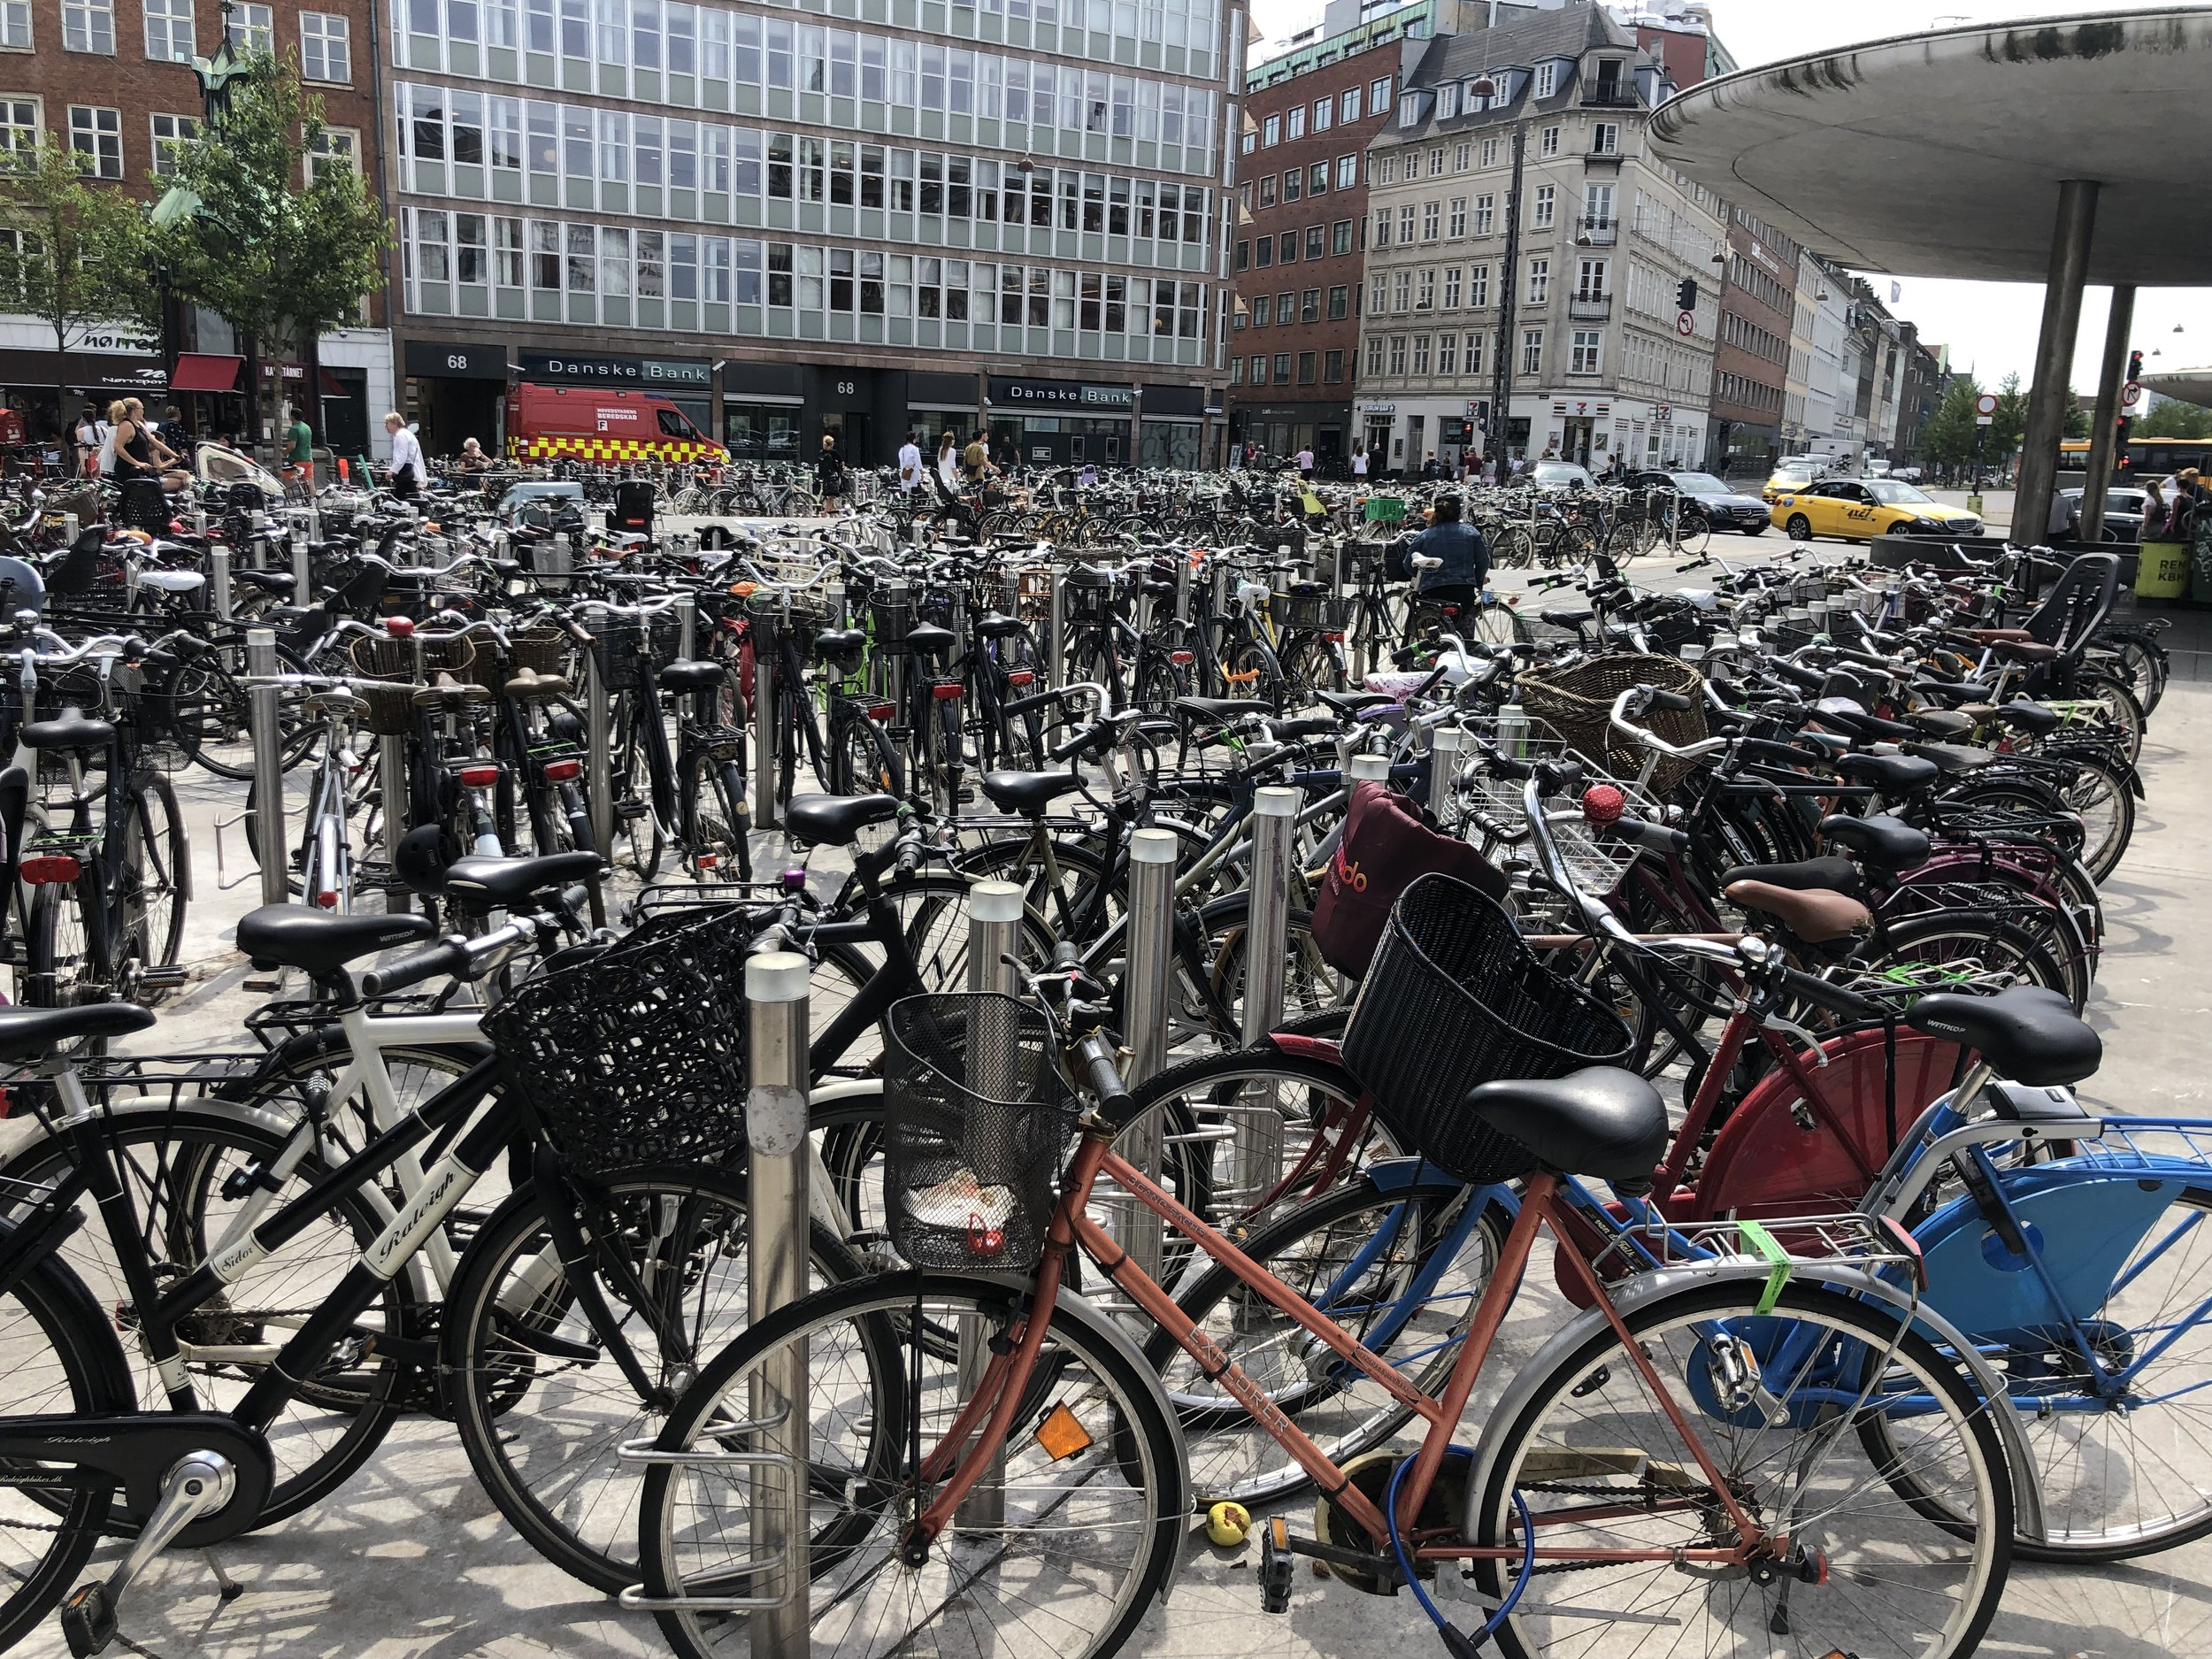 Once we got to Copenhagen we immediately noticed there were thousands bicycles all over the place including large areas like this one where bicycles could be temporarily stored. Later we learned that Copenhagen city leaders had made it their mission to get the citizens out of their cars to reduce pollution and congestion. As a result, there are more bikes than you can imagine in this city. There are also special bike lanes where they ride with their own traffic lights.